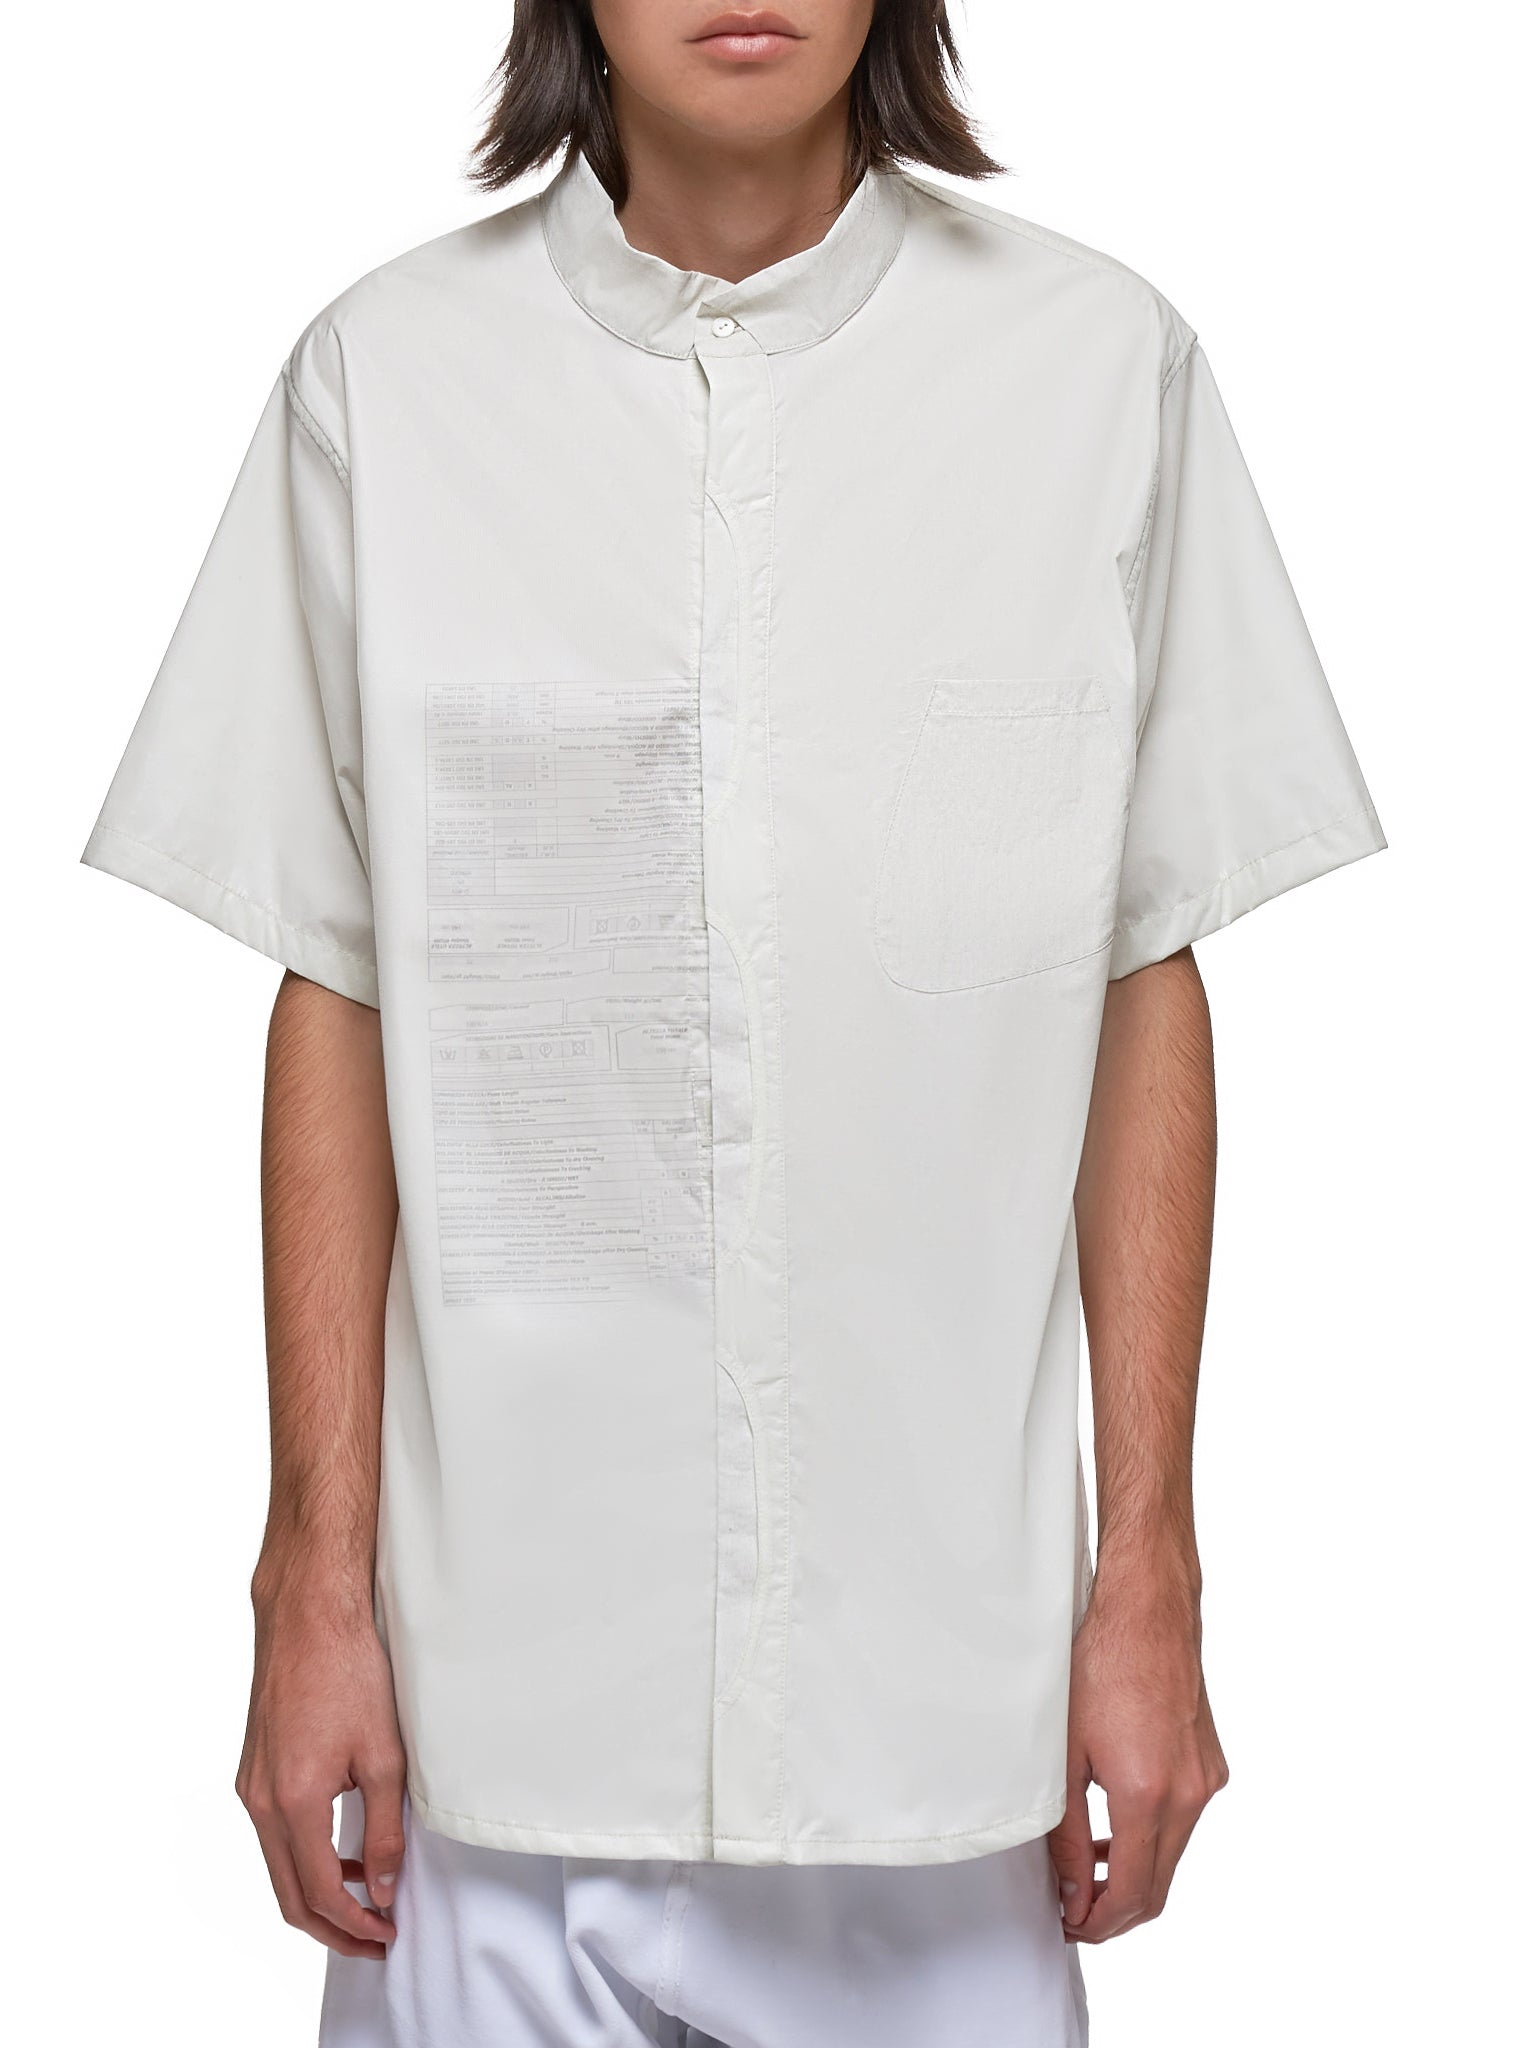 Technical Magnetic Short Sleeve Shirt (LUP-P-S-21-WH-WHITE)